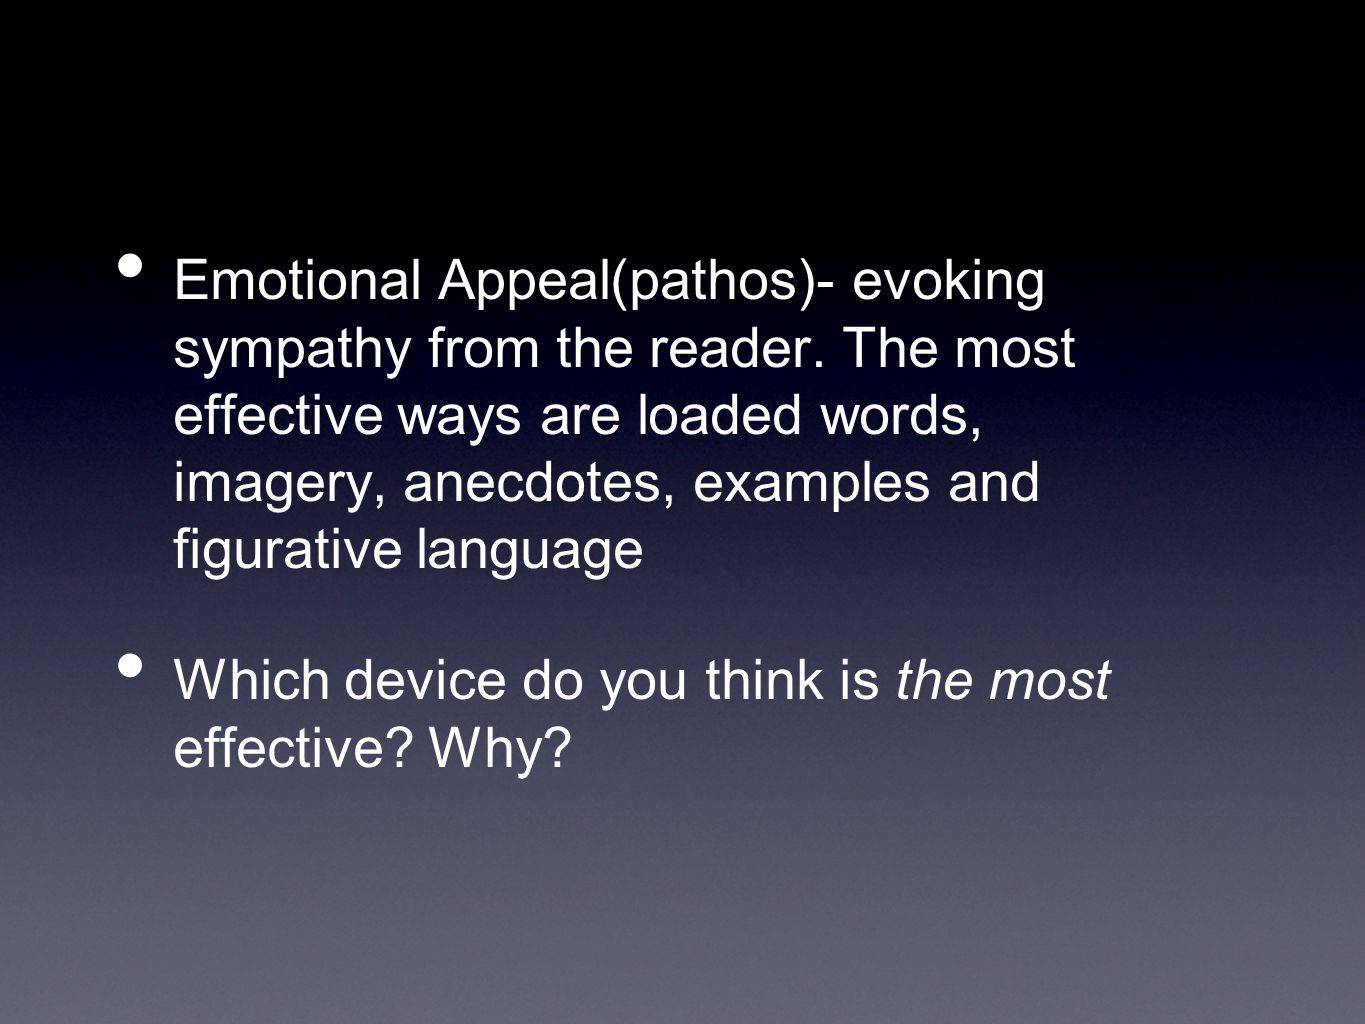 Emotional Appeal(pathos)- evoking sympathy from the reader.